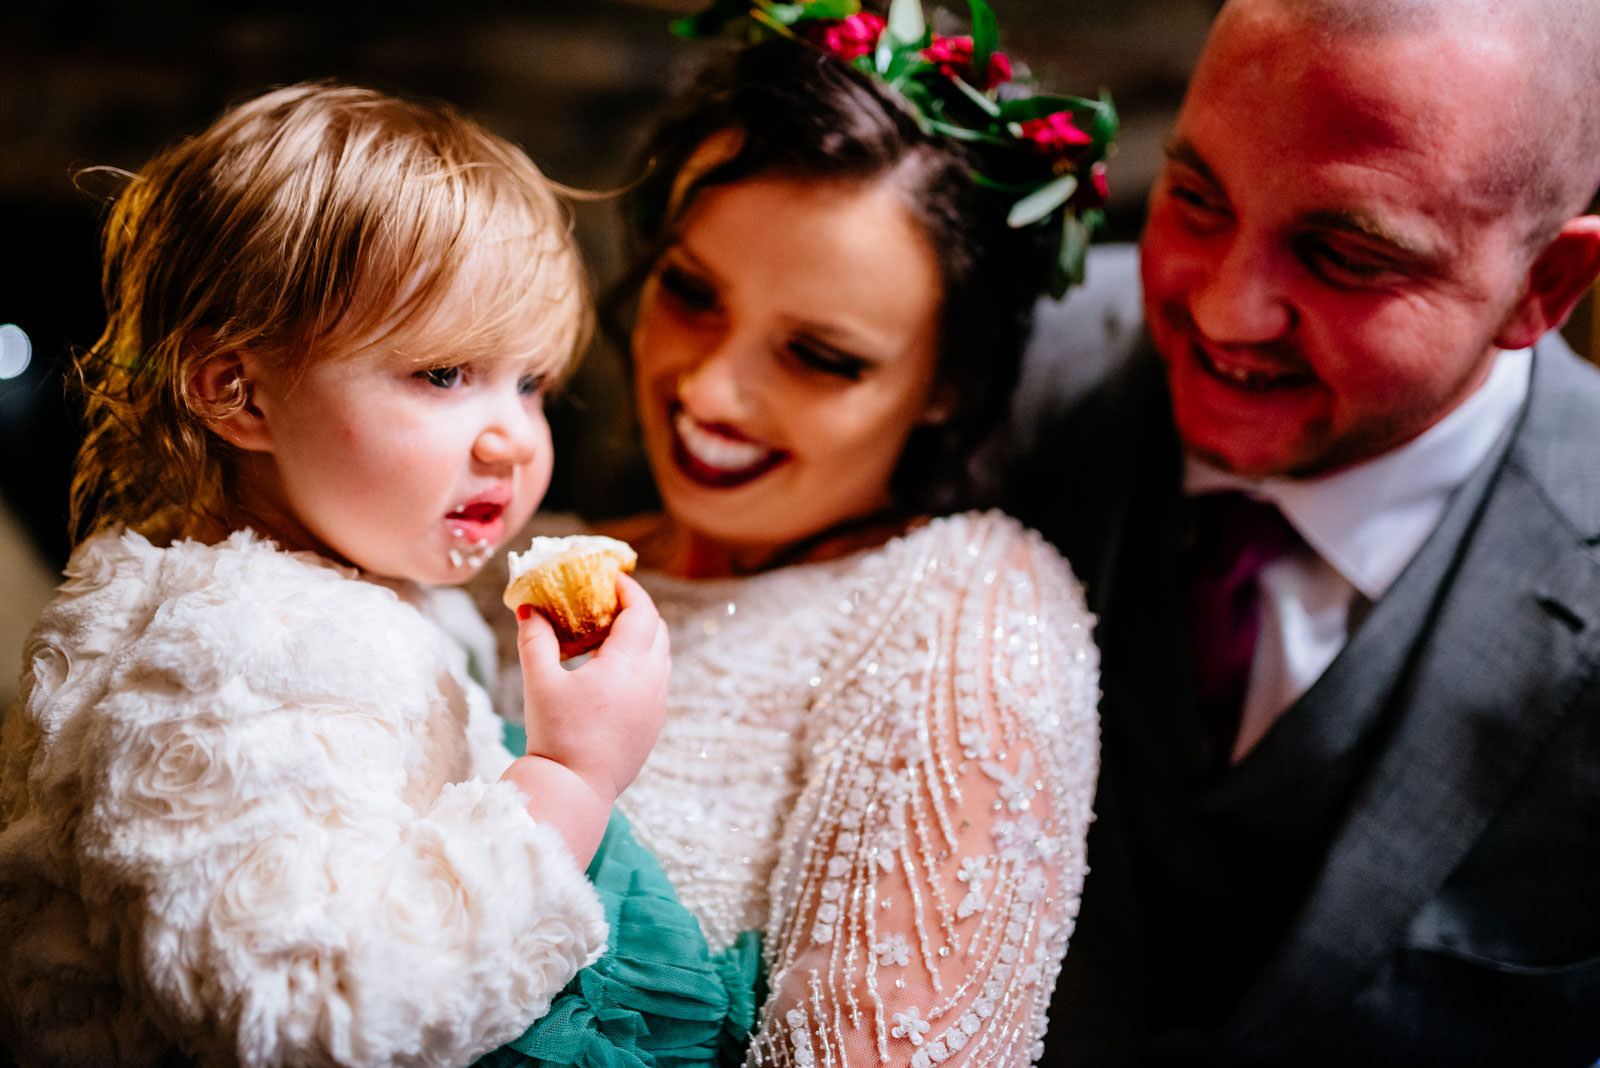 bride groom kid eating cupcake at wedding